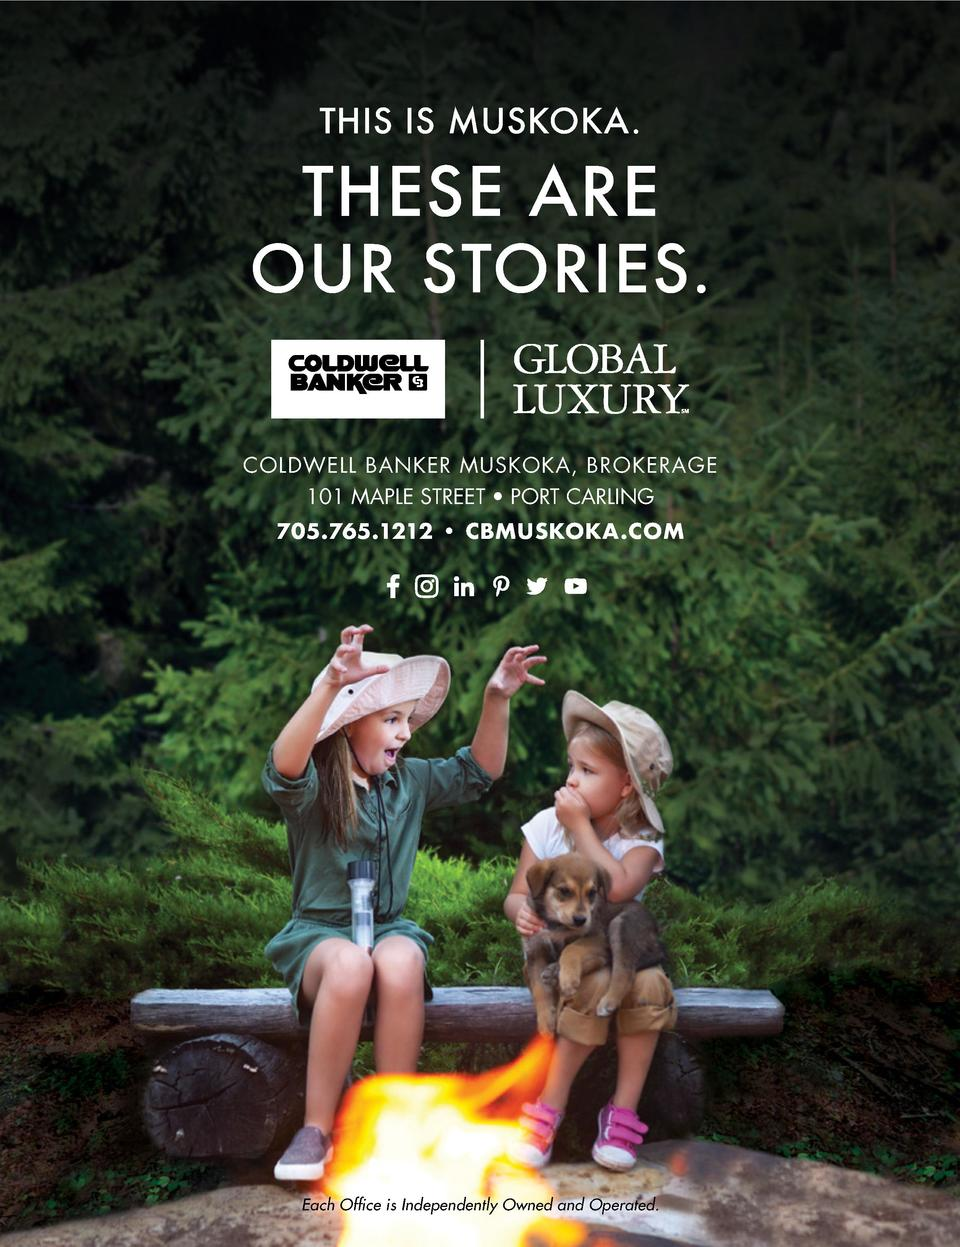 THIS IS MUSKOKA.  THESE ARE OUR STORIES. COLDWELL BANKER MUSKOKA, BROKERAGE 101 MAPLE STREET     PORT CARLING 705.765.1212...